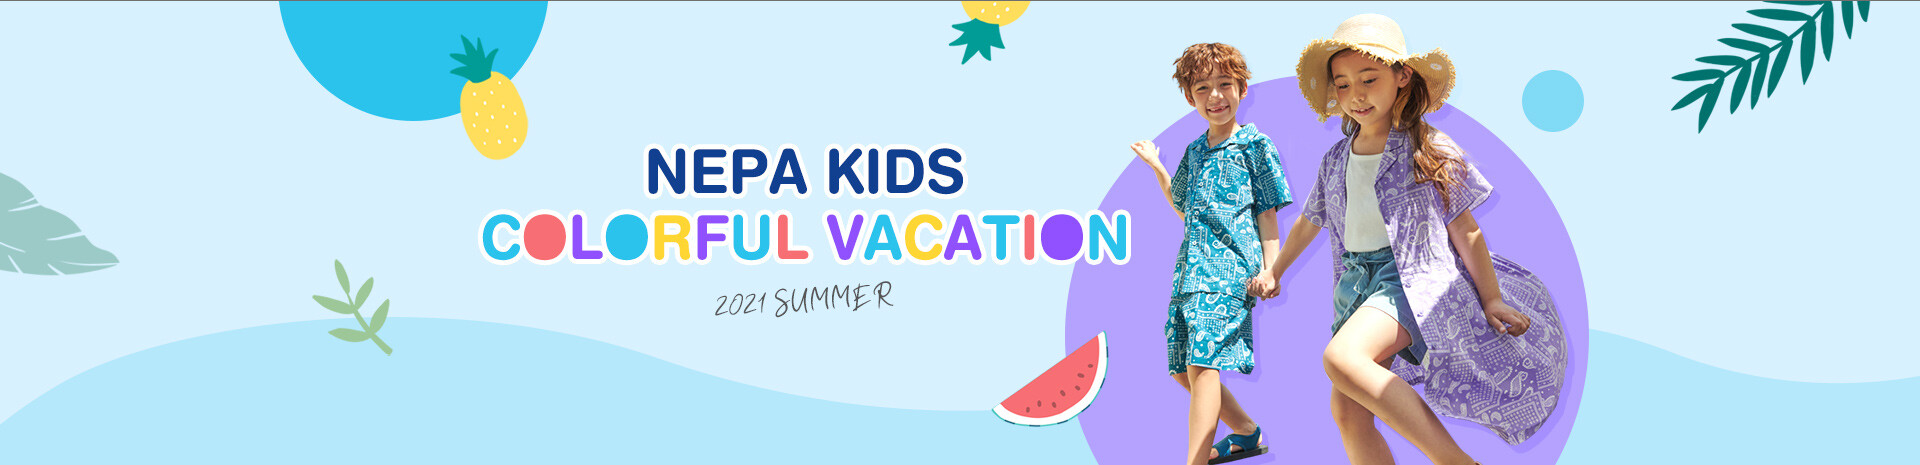 NEPAKIDS 21S/S COLORFUL VACATION